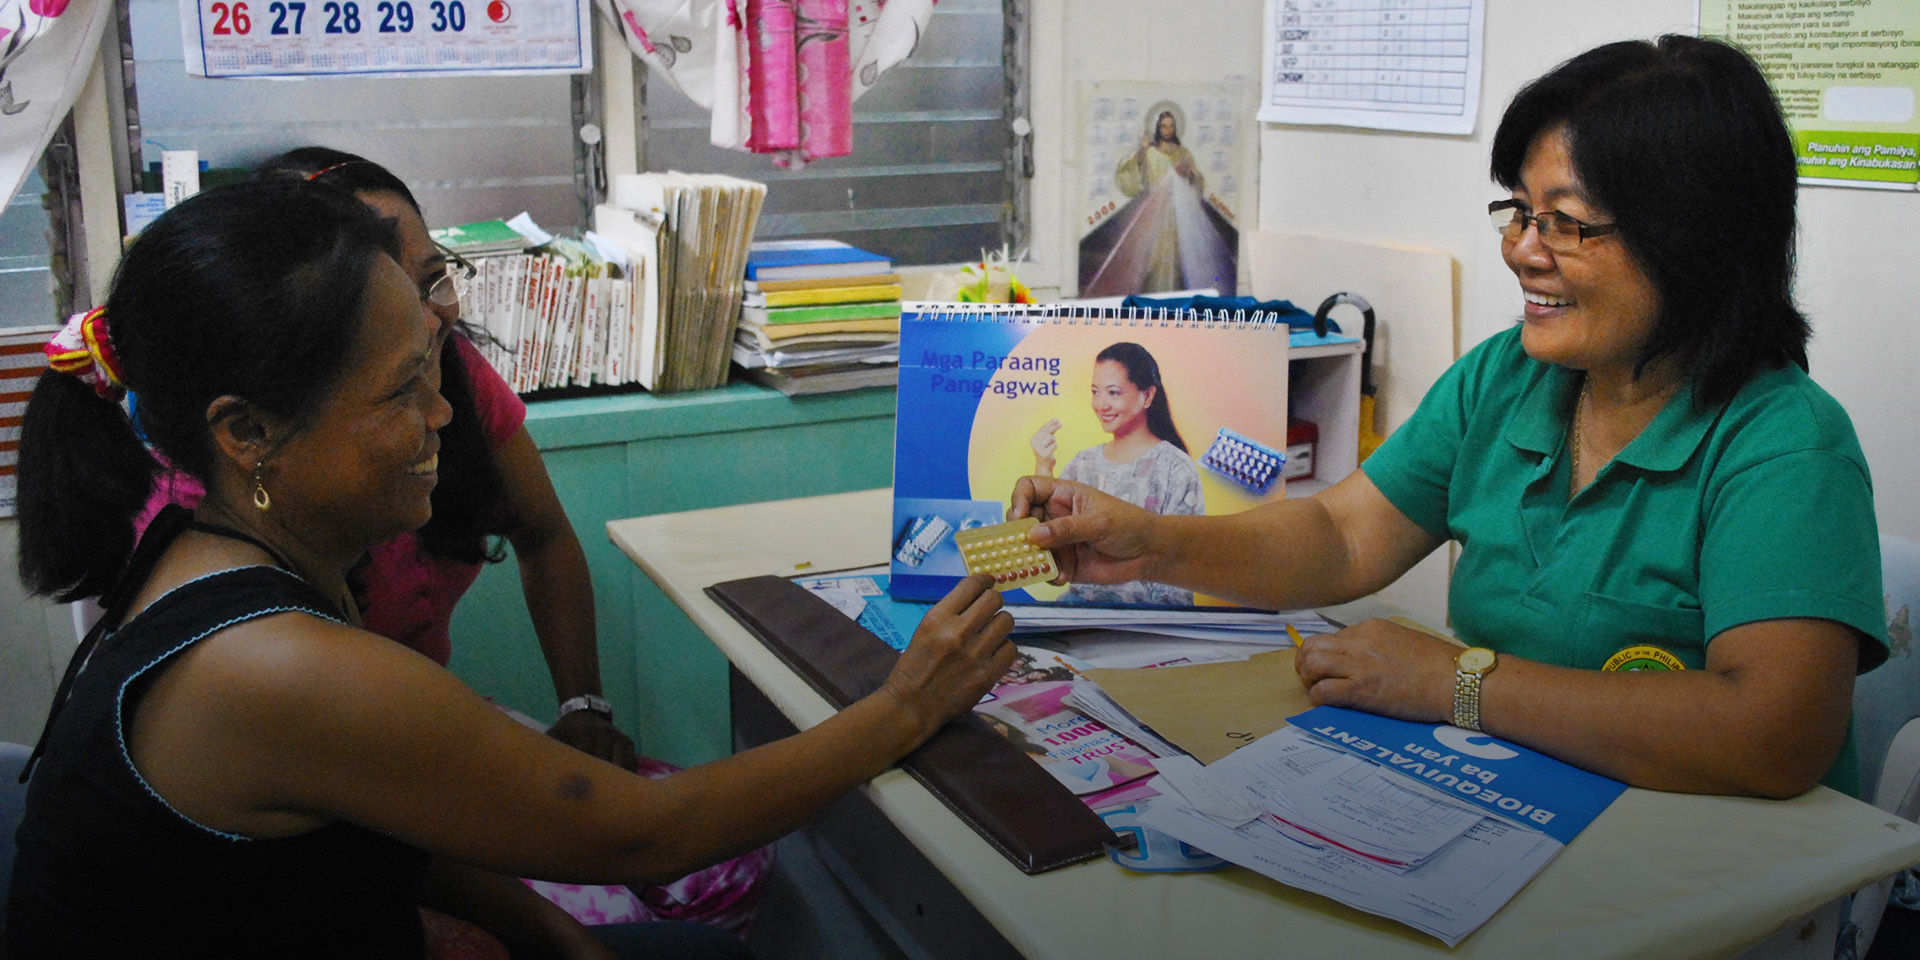 A health worker discusses family planning with a patient.